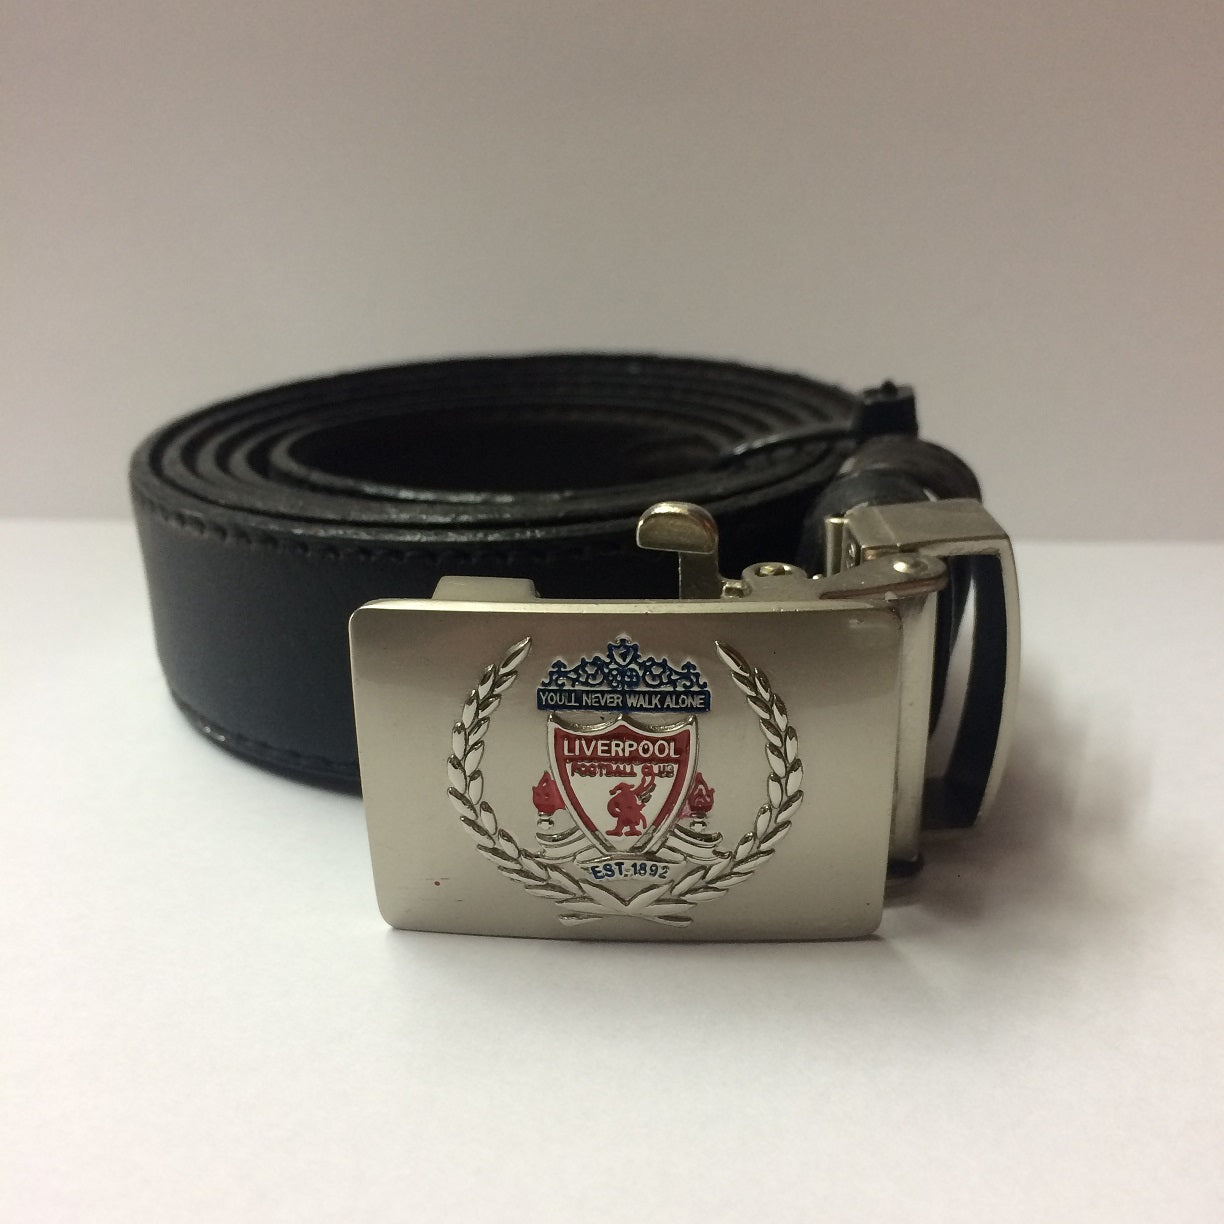 Liverpool Men's Dress Belt